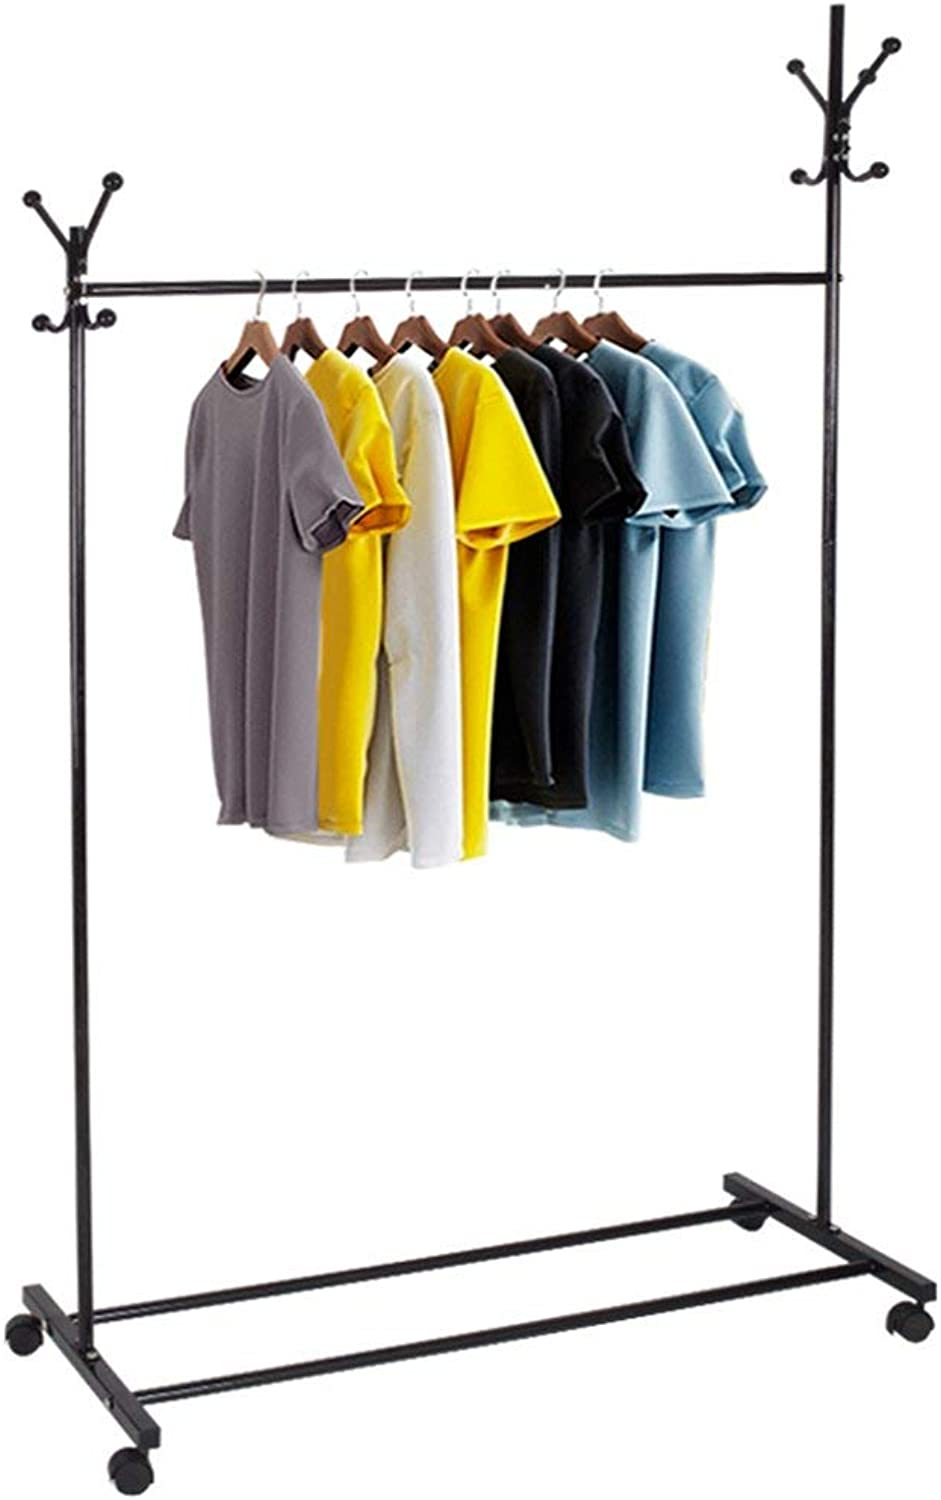 DYR 3-in-1 Multifunction Floor Coat Hanger with Pulley Hooks 177  105 cm (color  Black, Size  A)